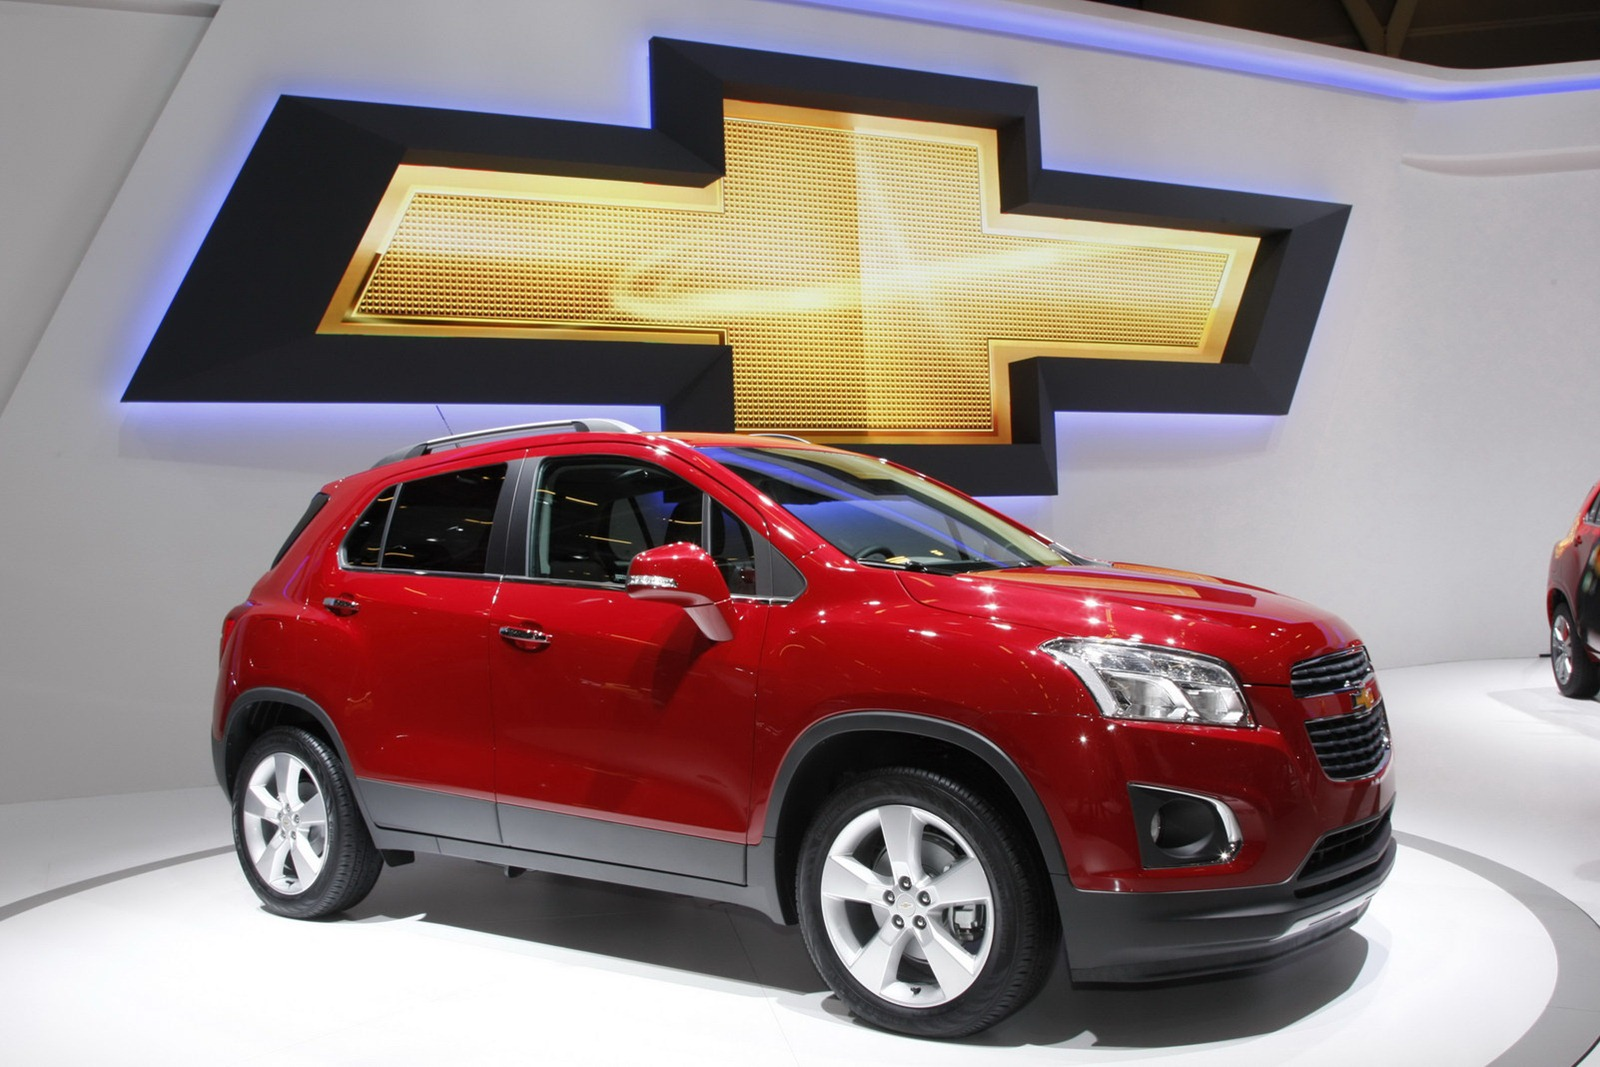 new car launches of 2013 in indiaGM to Launch up to 8 New Models in India